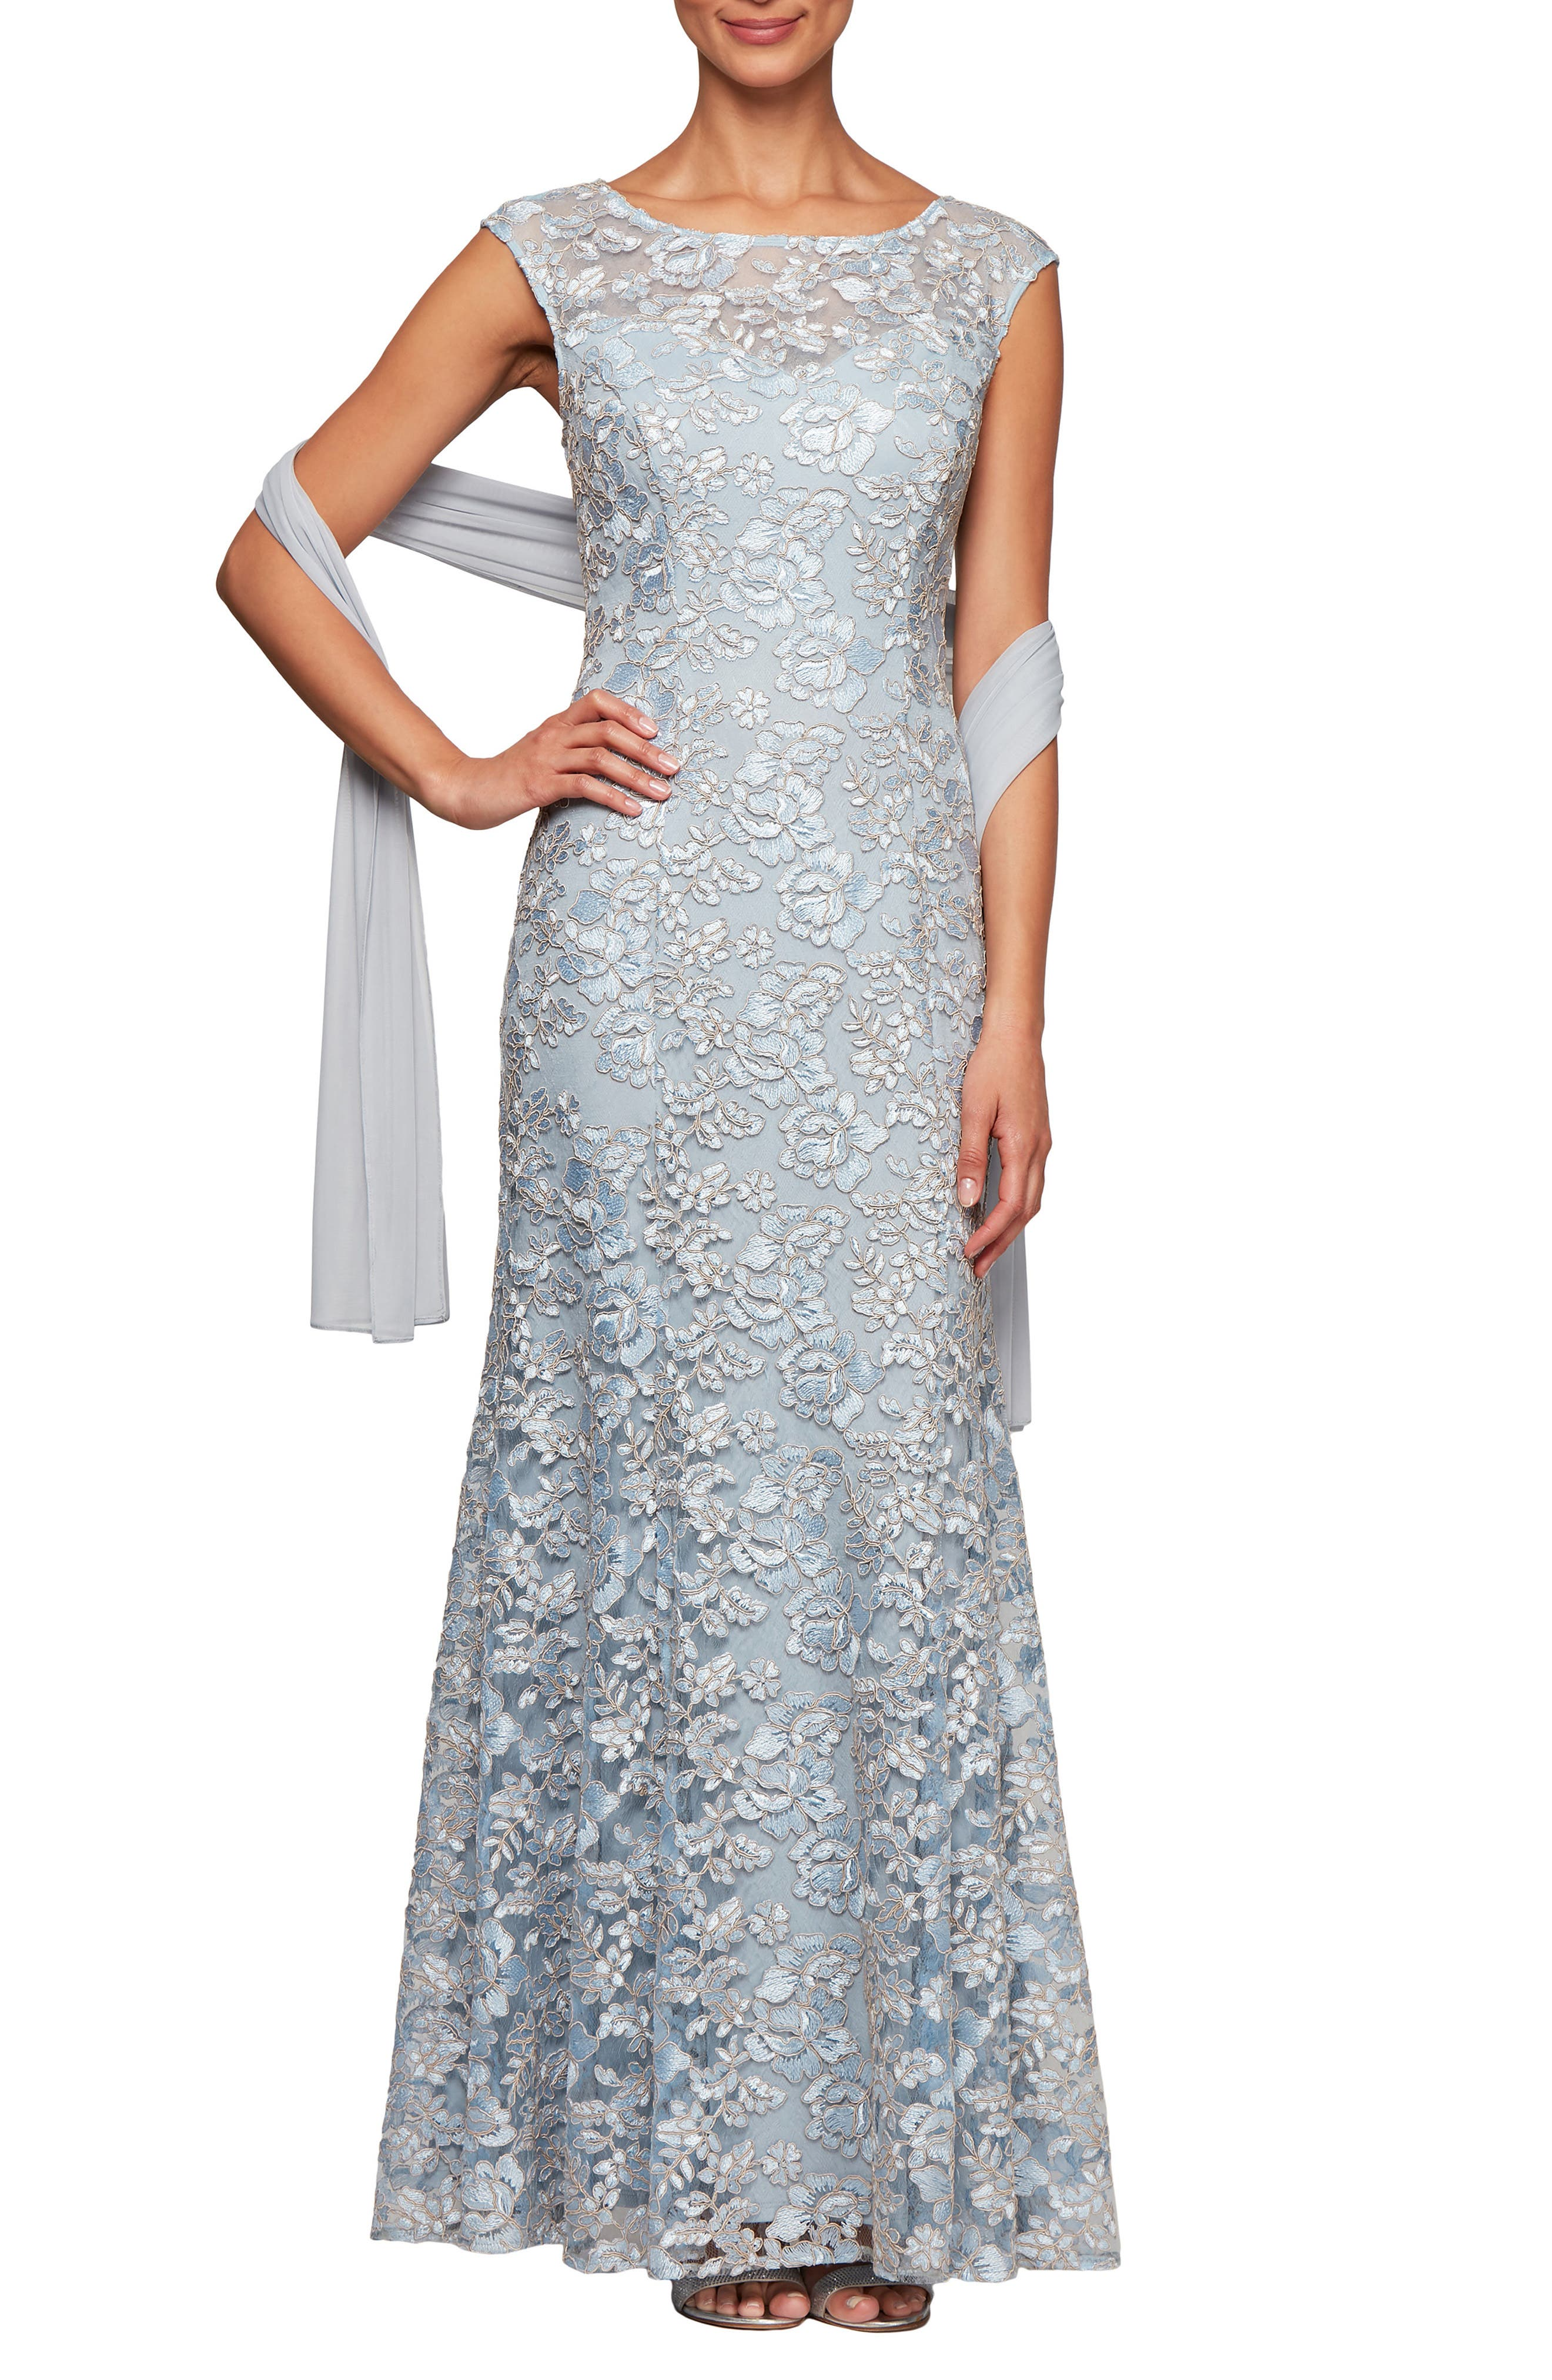 Petite Alex Evenings Floral Embroidered Evening Dress With Wrap, Blue